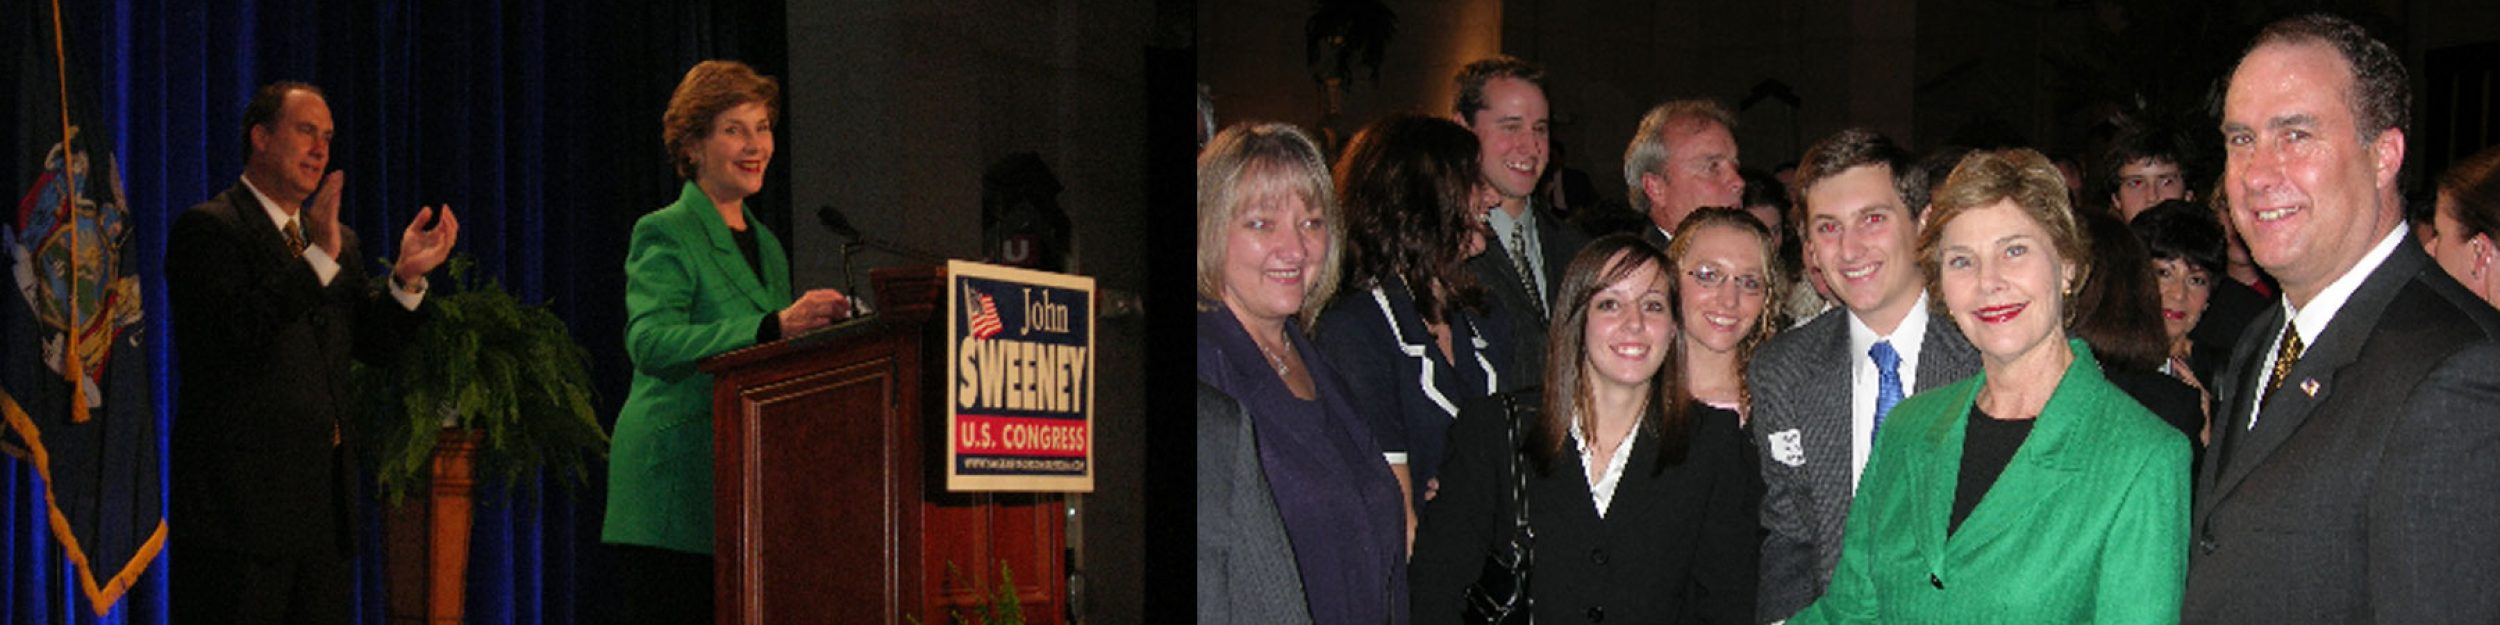 sweeneyforcongress2006.com